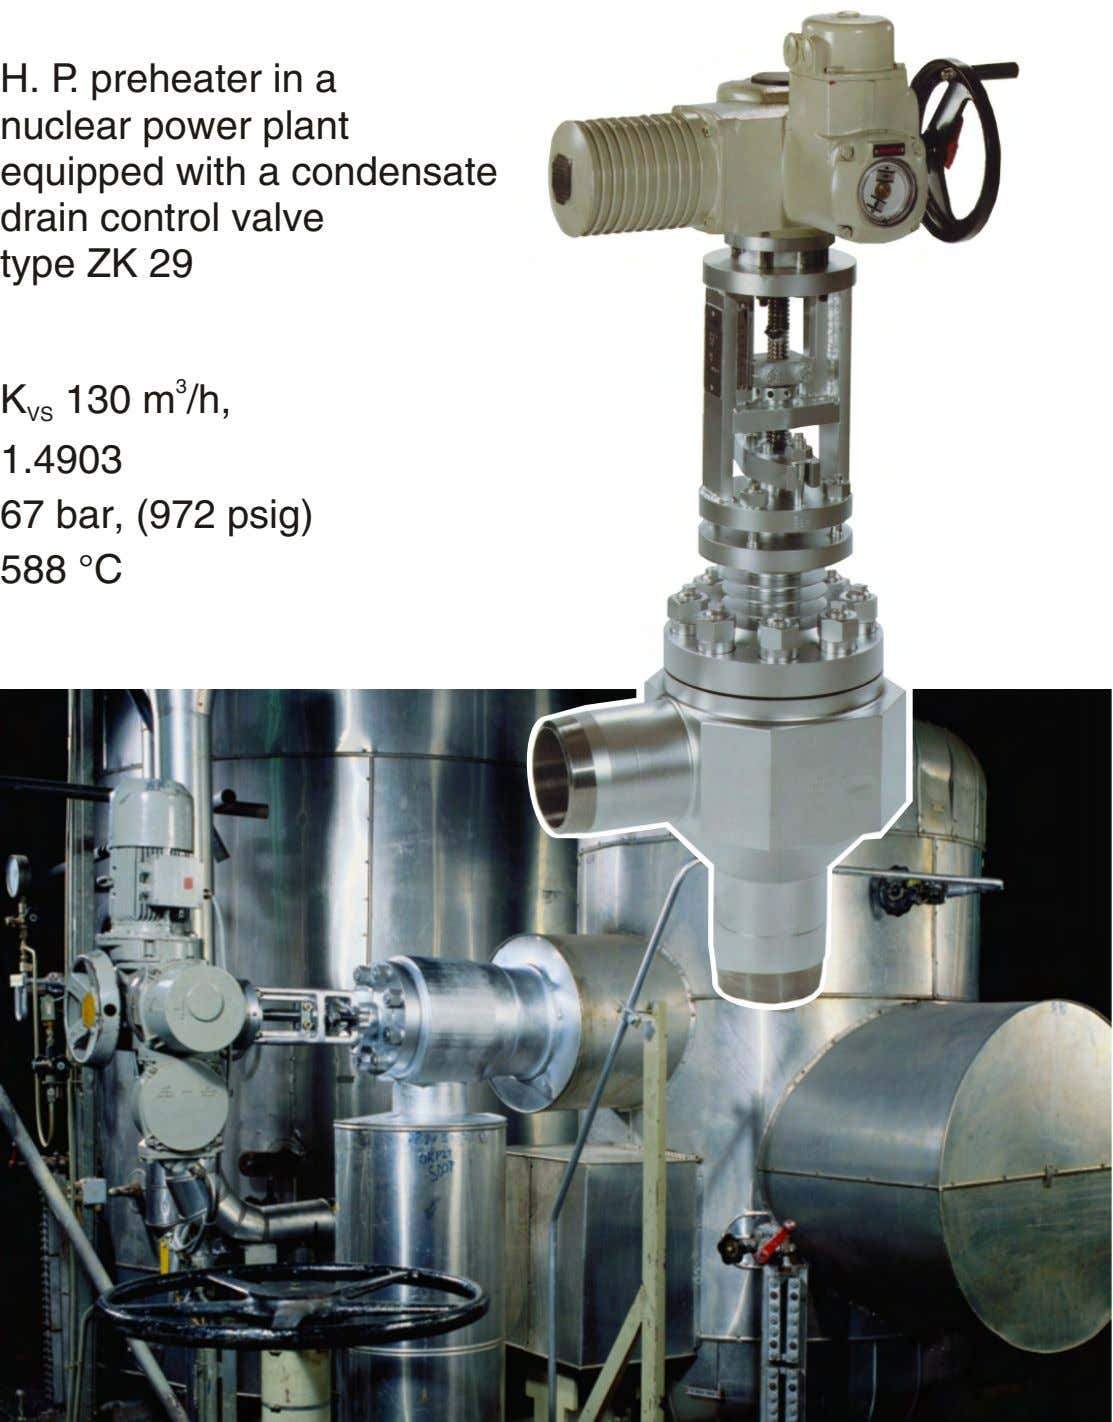 H. P. preheater in a nuclear power plant equipped with a condensate drain control valve